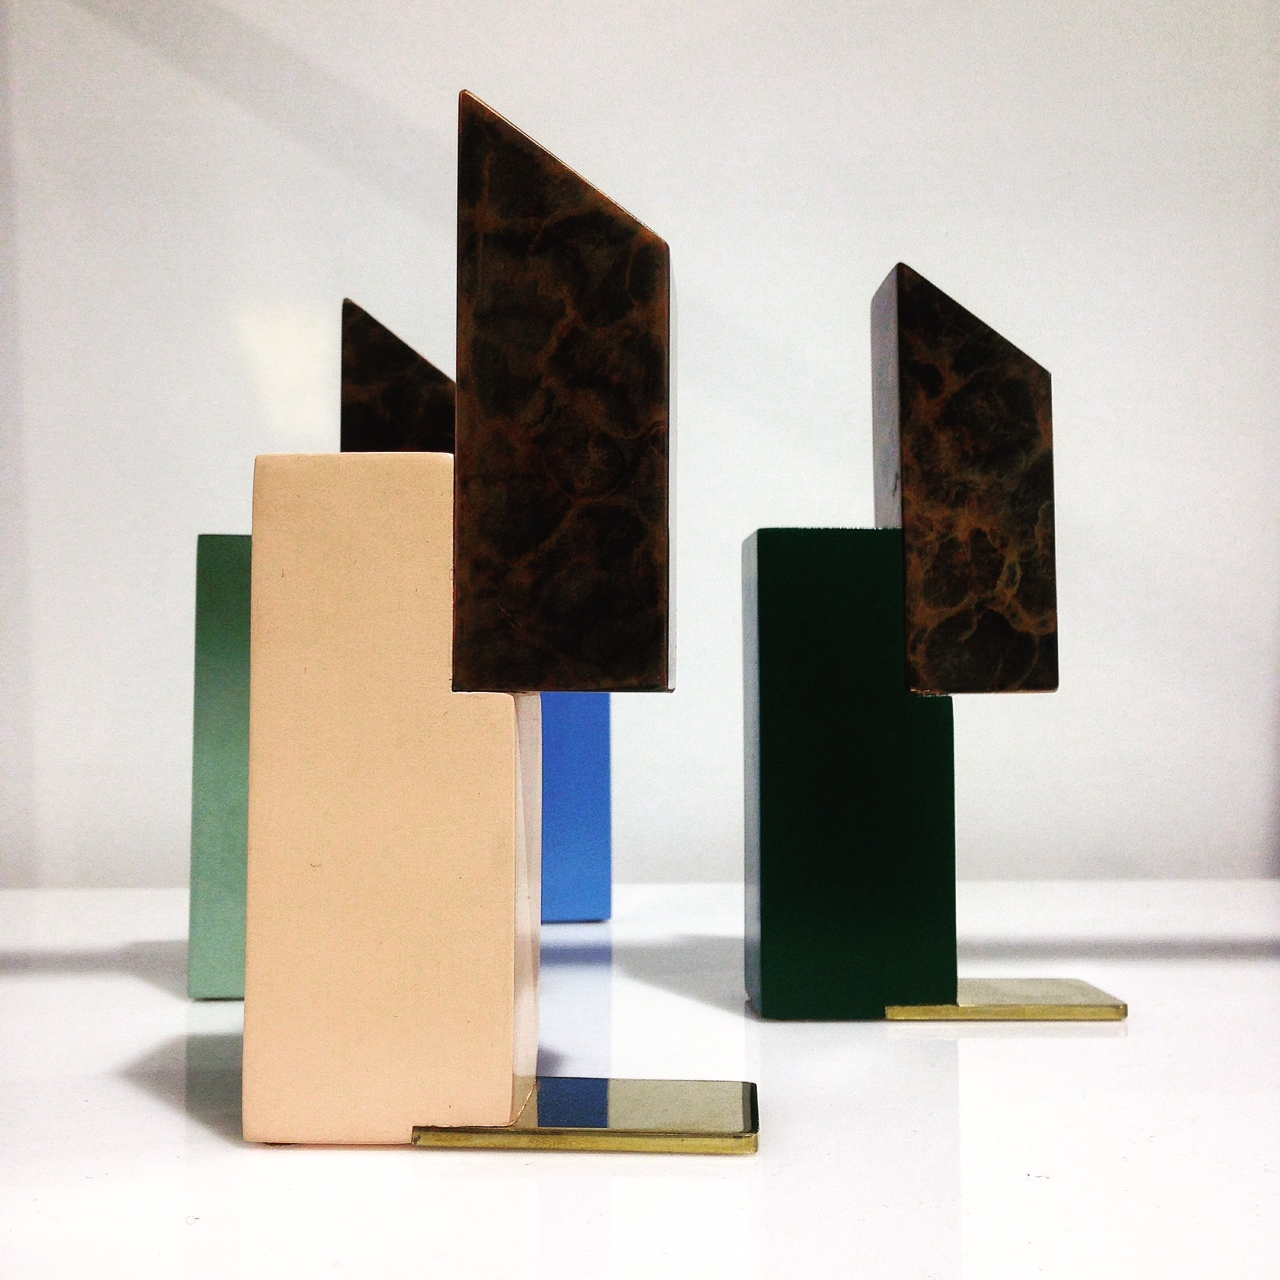 Sculpture architectural objects